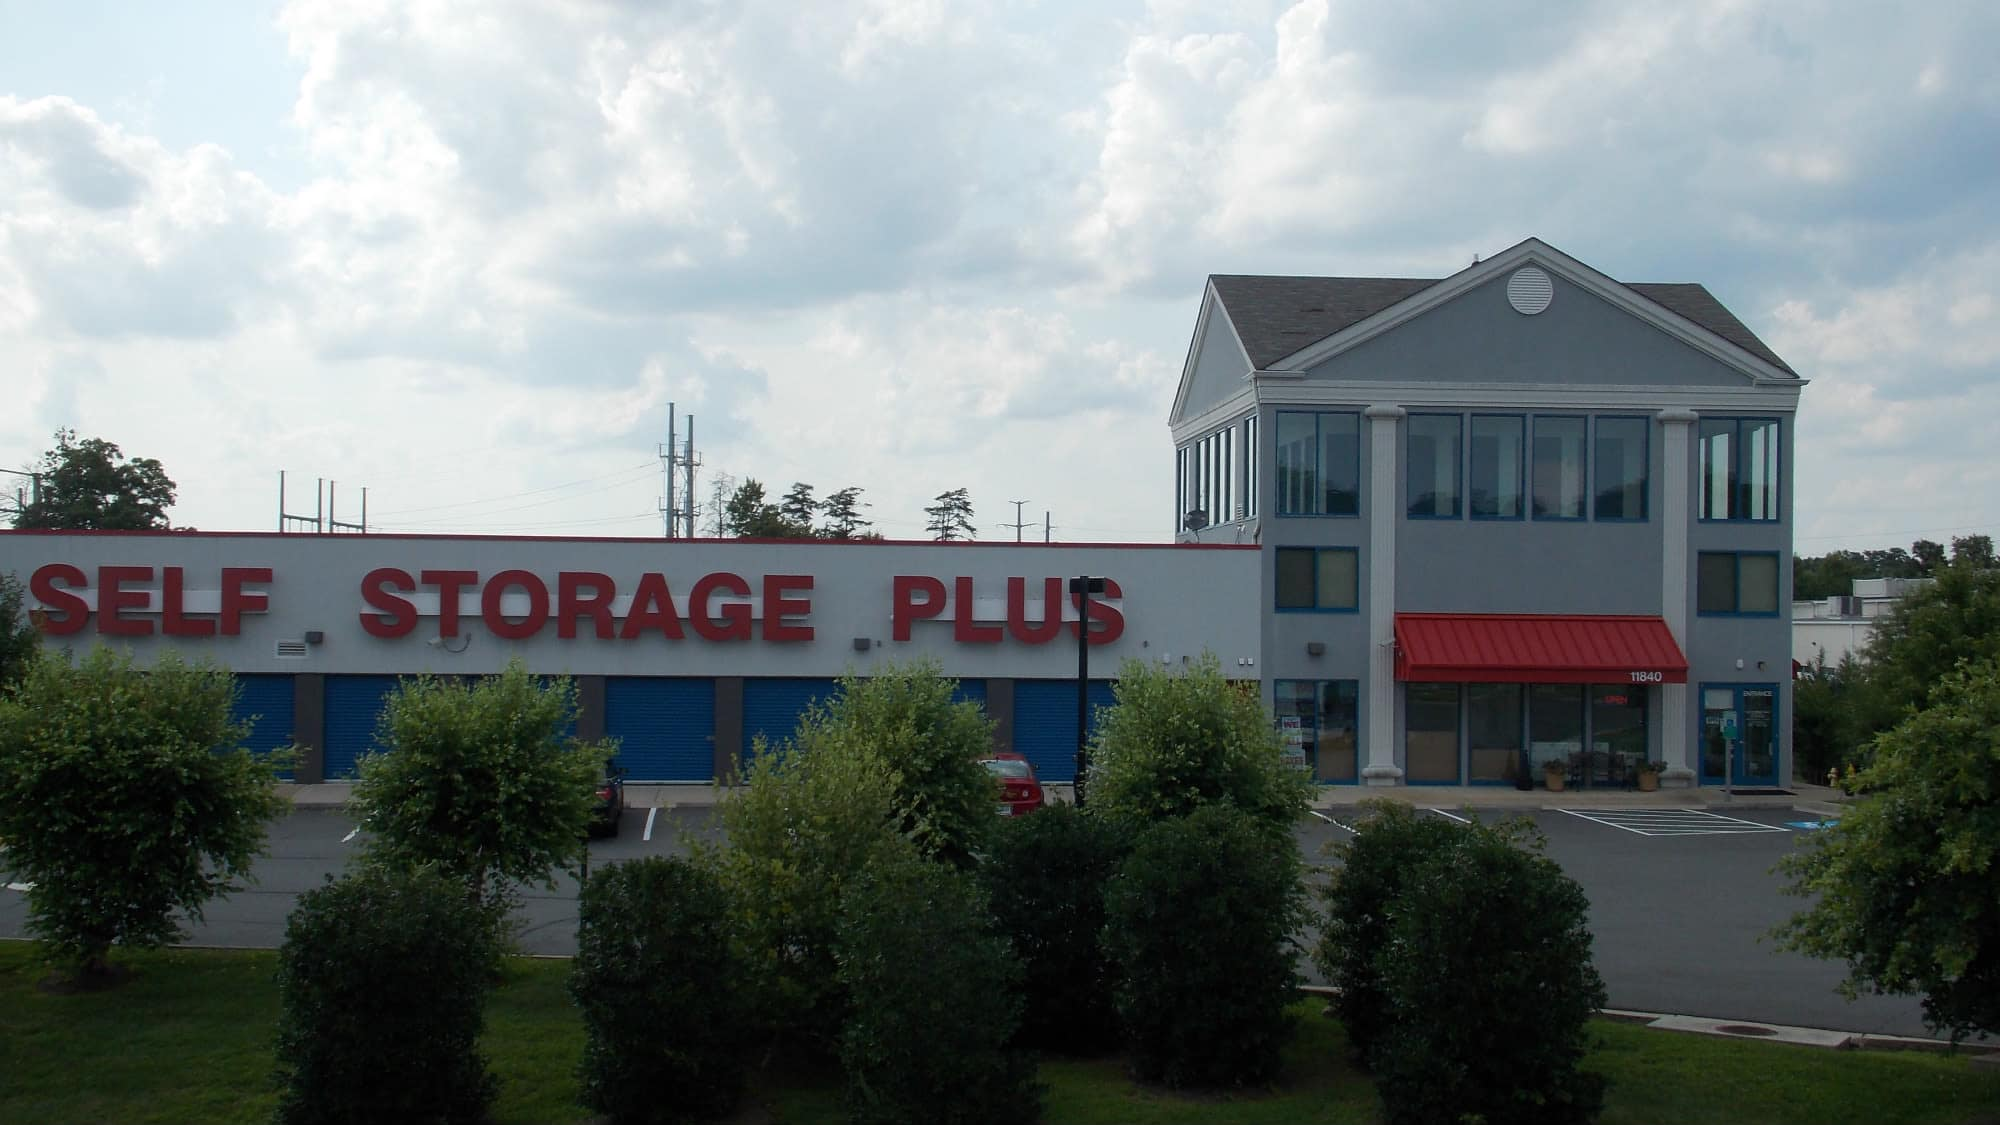 Exterior view of Self Storage Plus in Manassas, VA